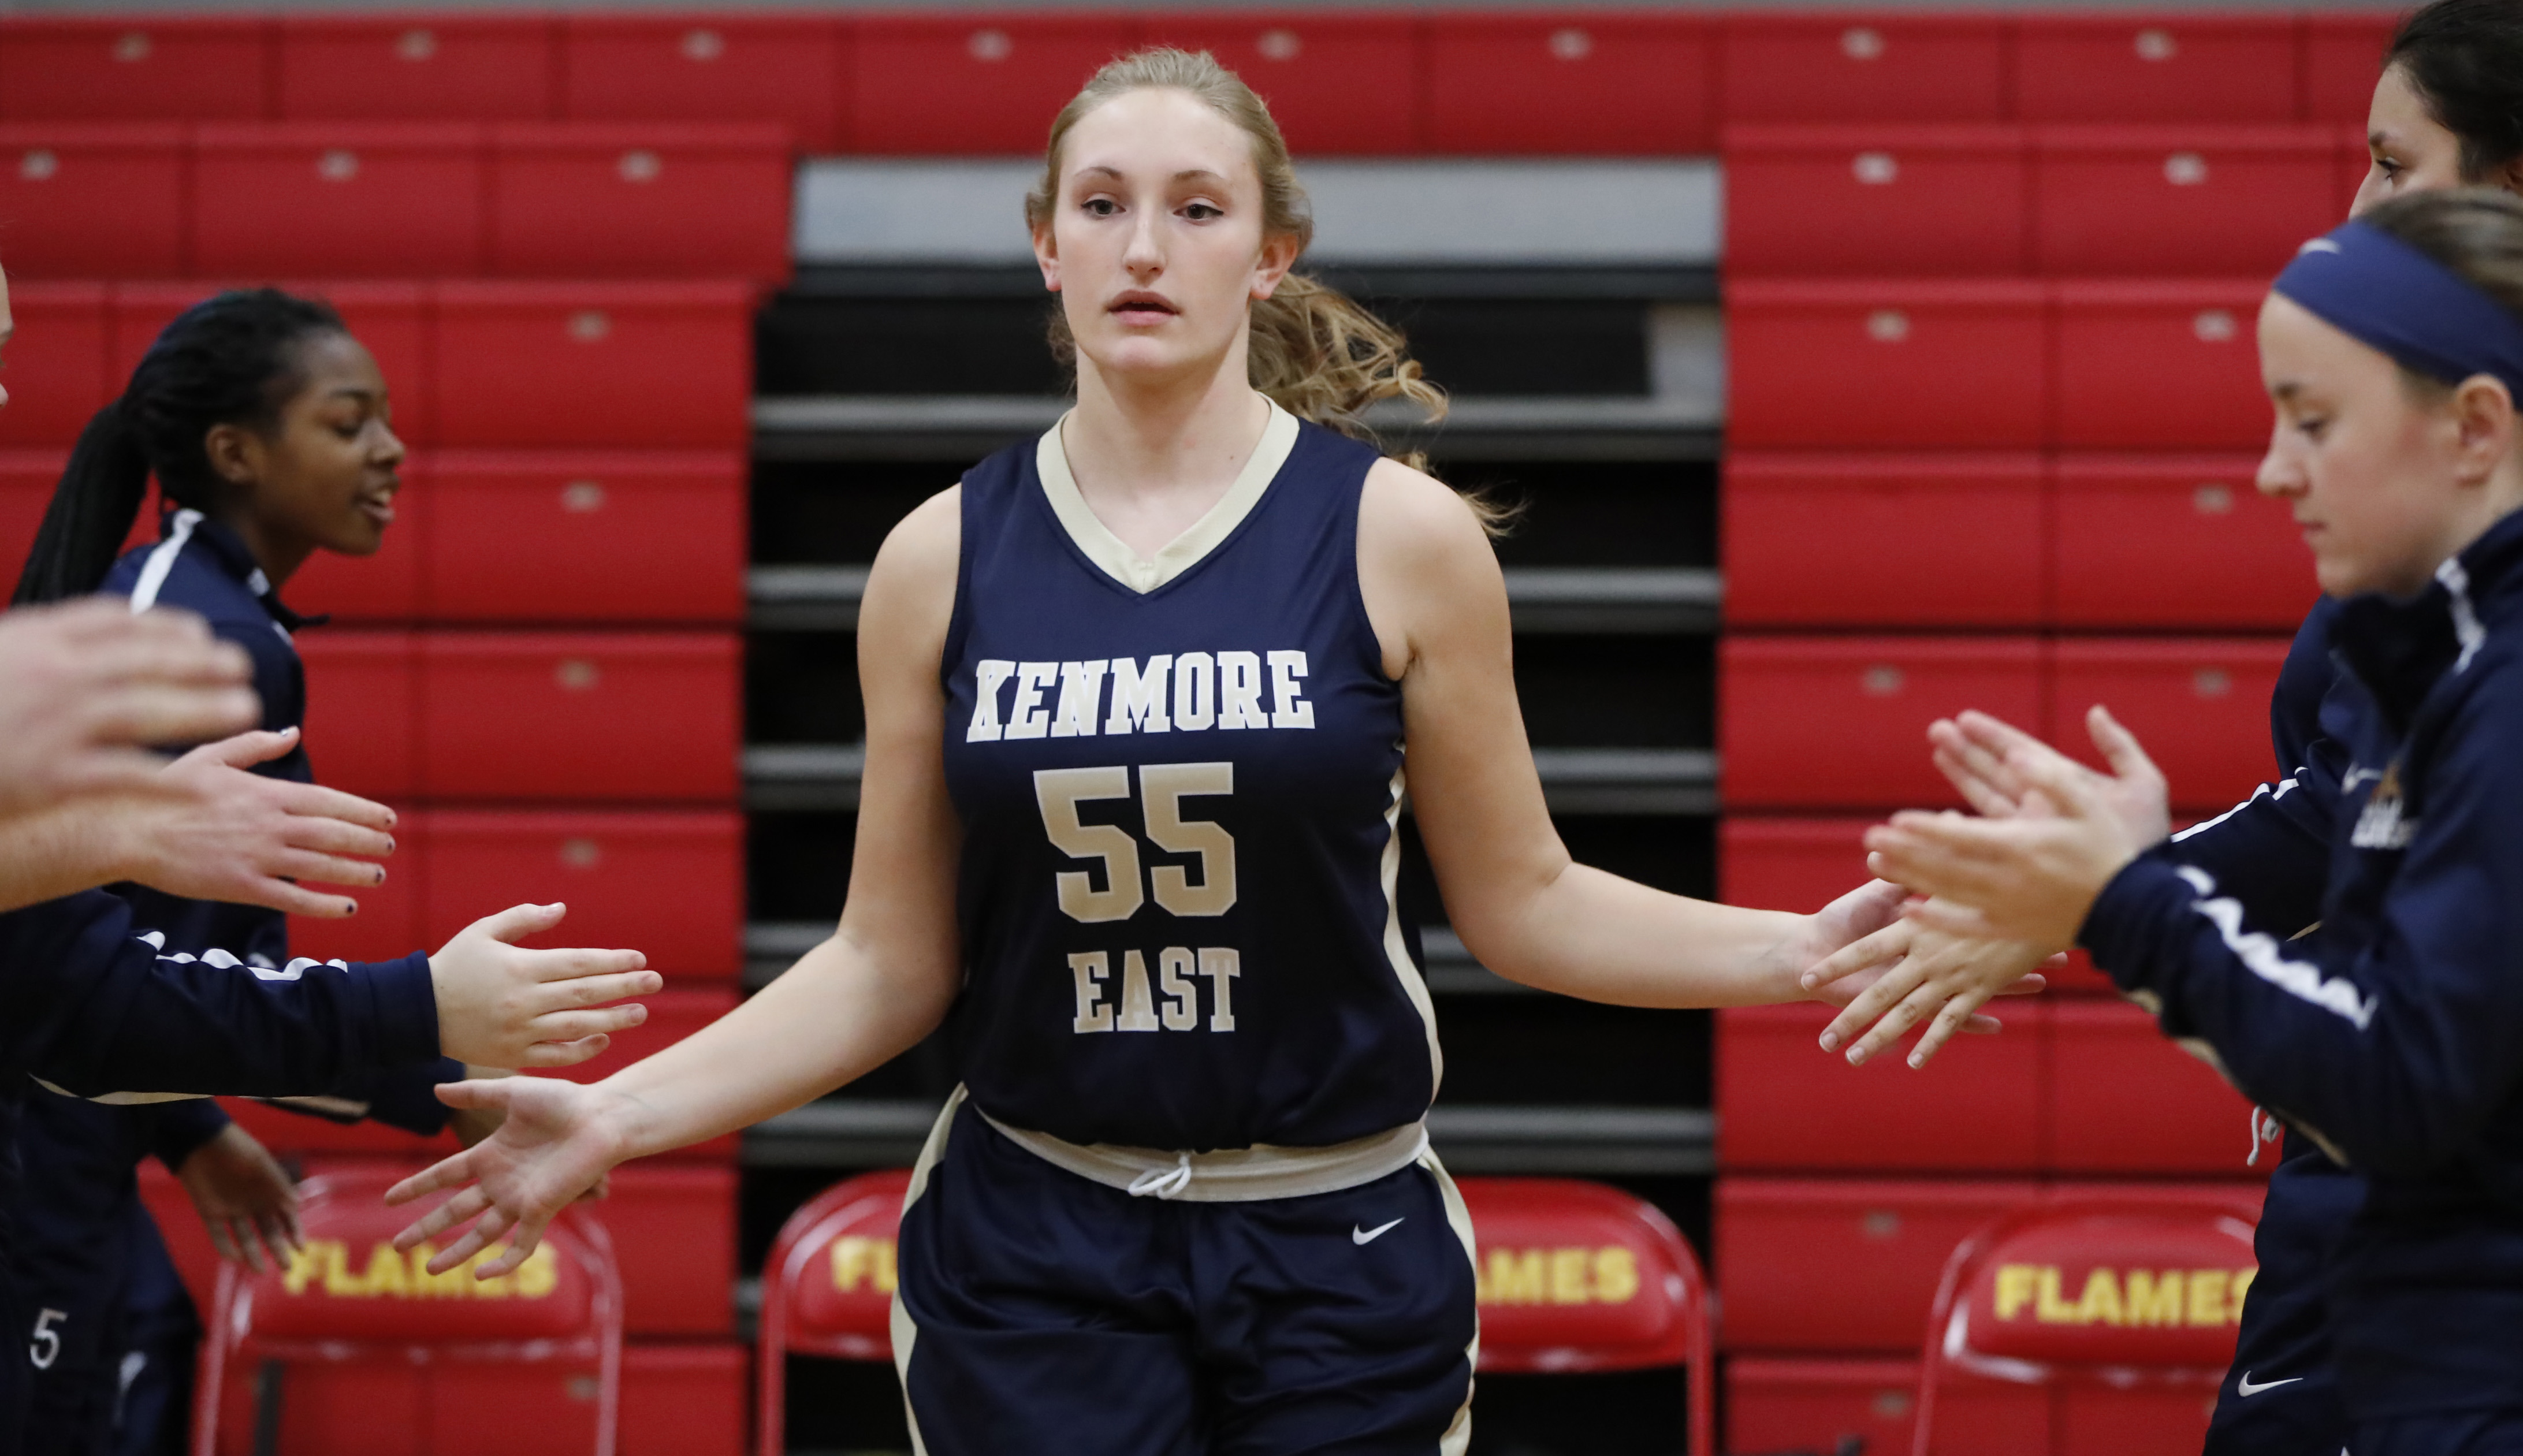 Carianne McCarthy and the Kenmore East Bulldogs are the No. 1 seed in Class A-2 for the Section VI tournament. (Harry Scull Jr./Buffalo News)